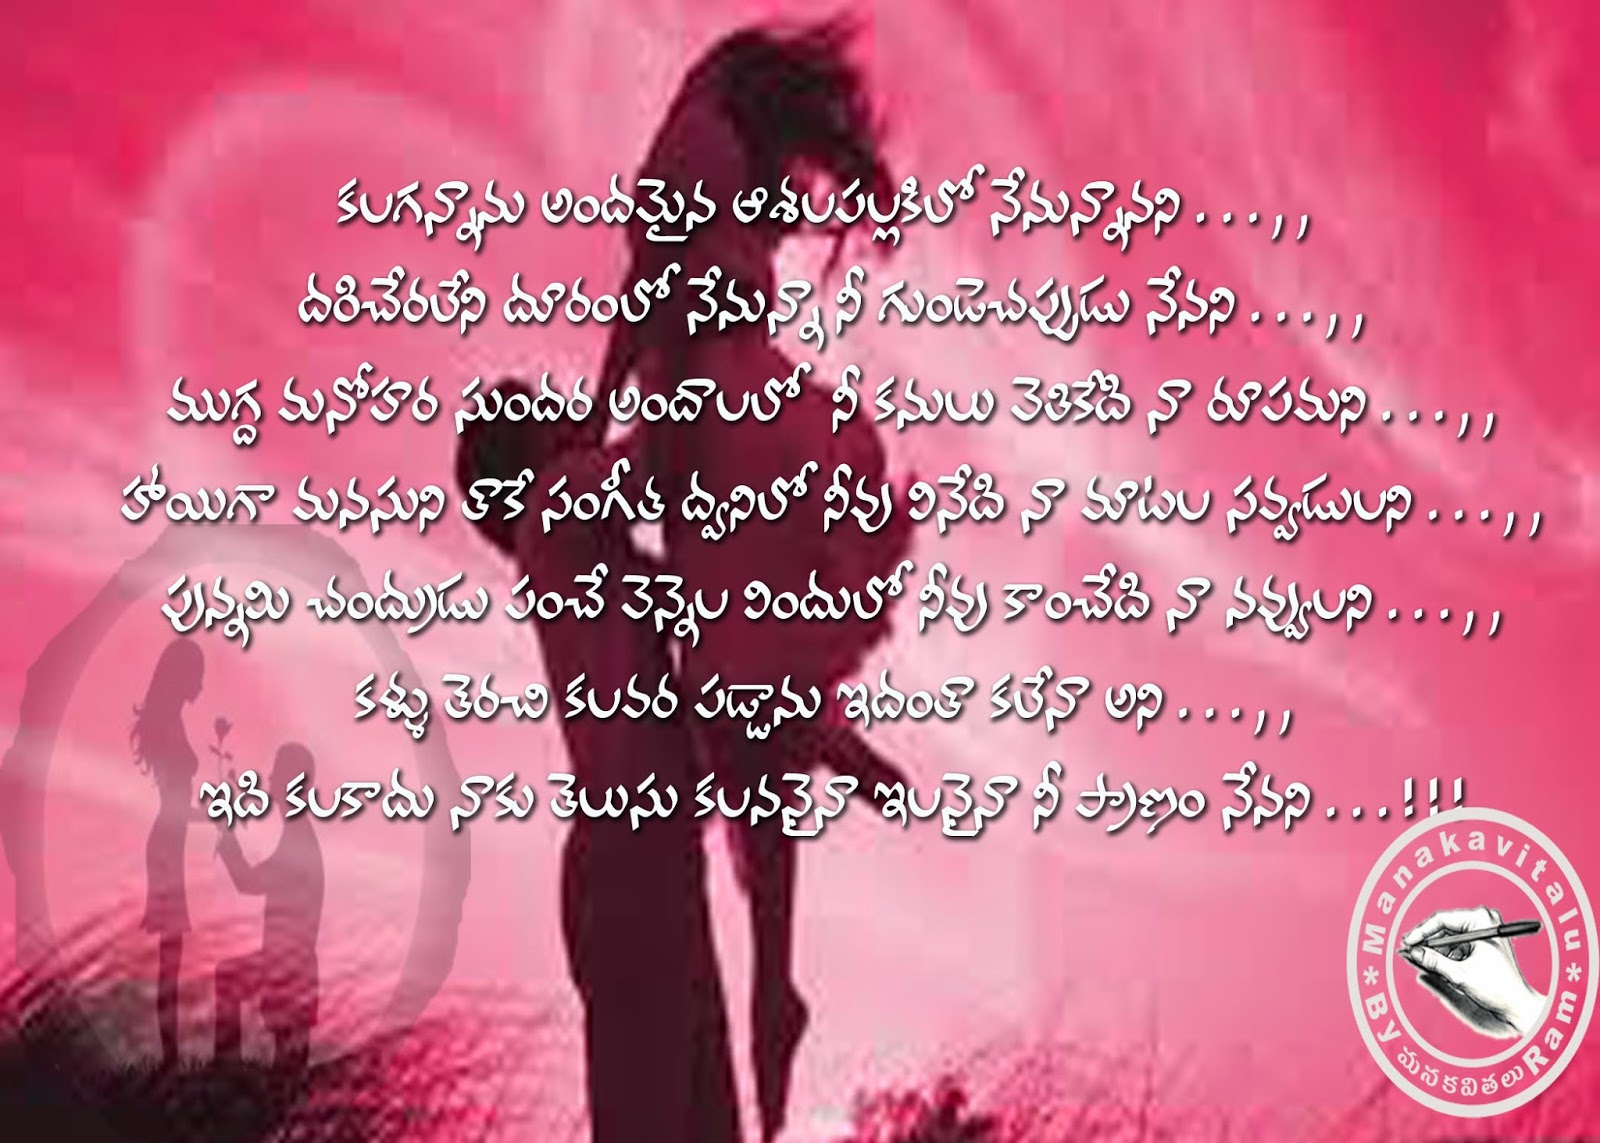 idi kala kaadhu telugu love poets on images